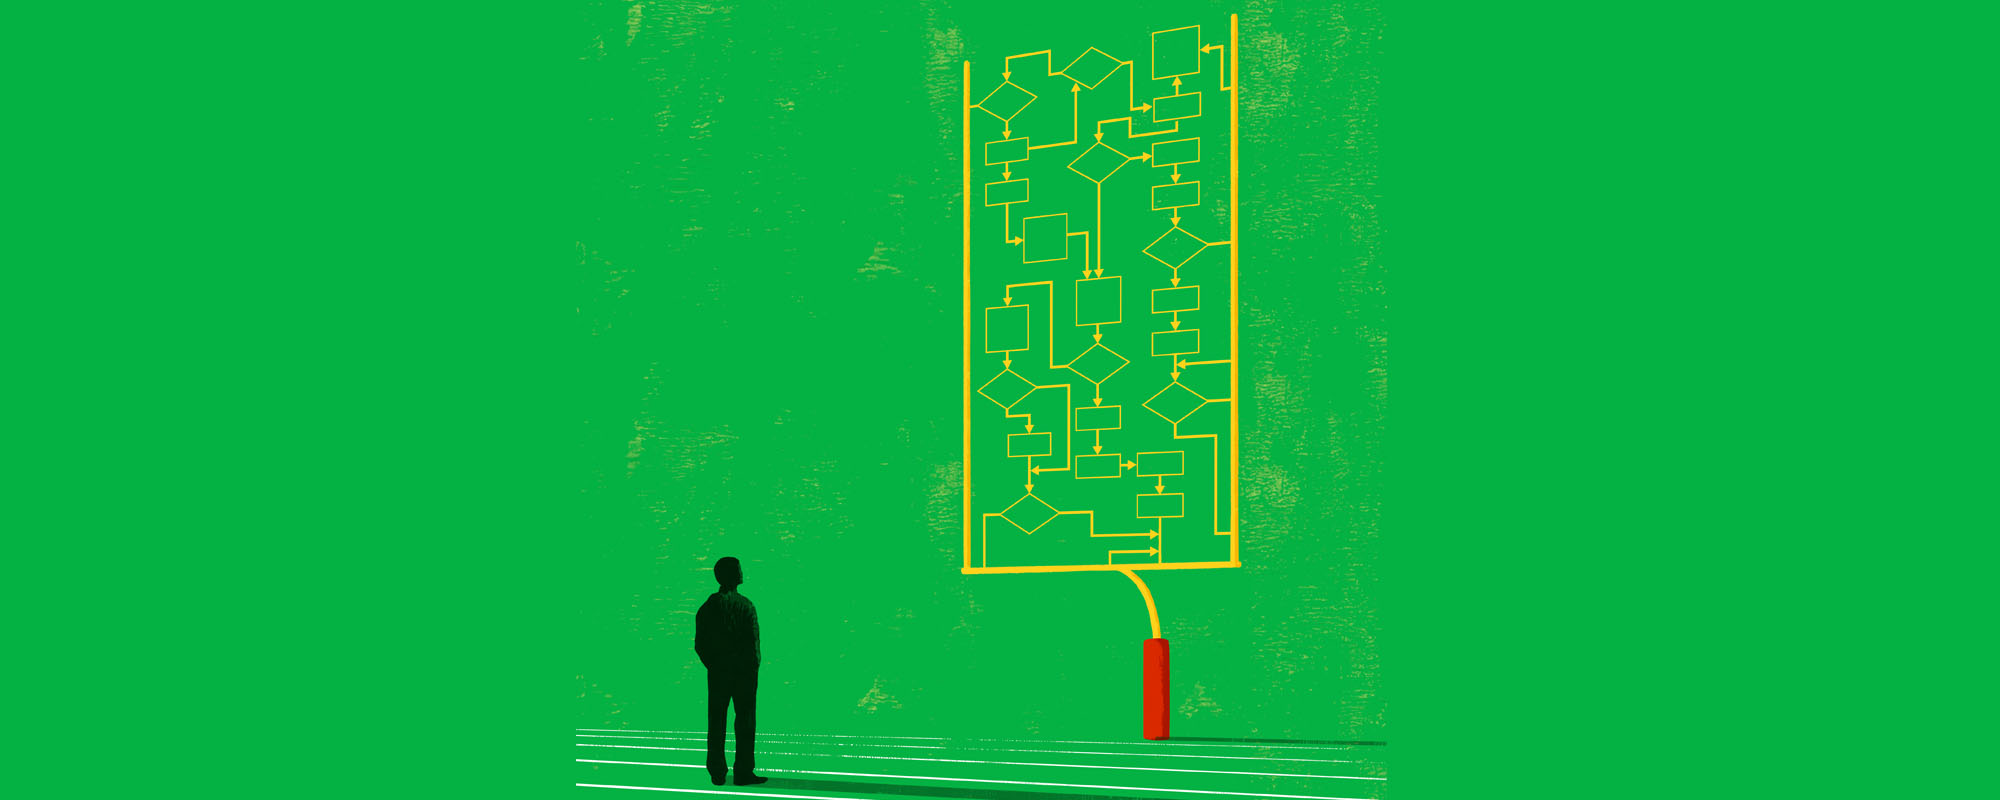 Illustration of a man looking at a football goal post